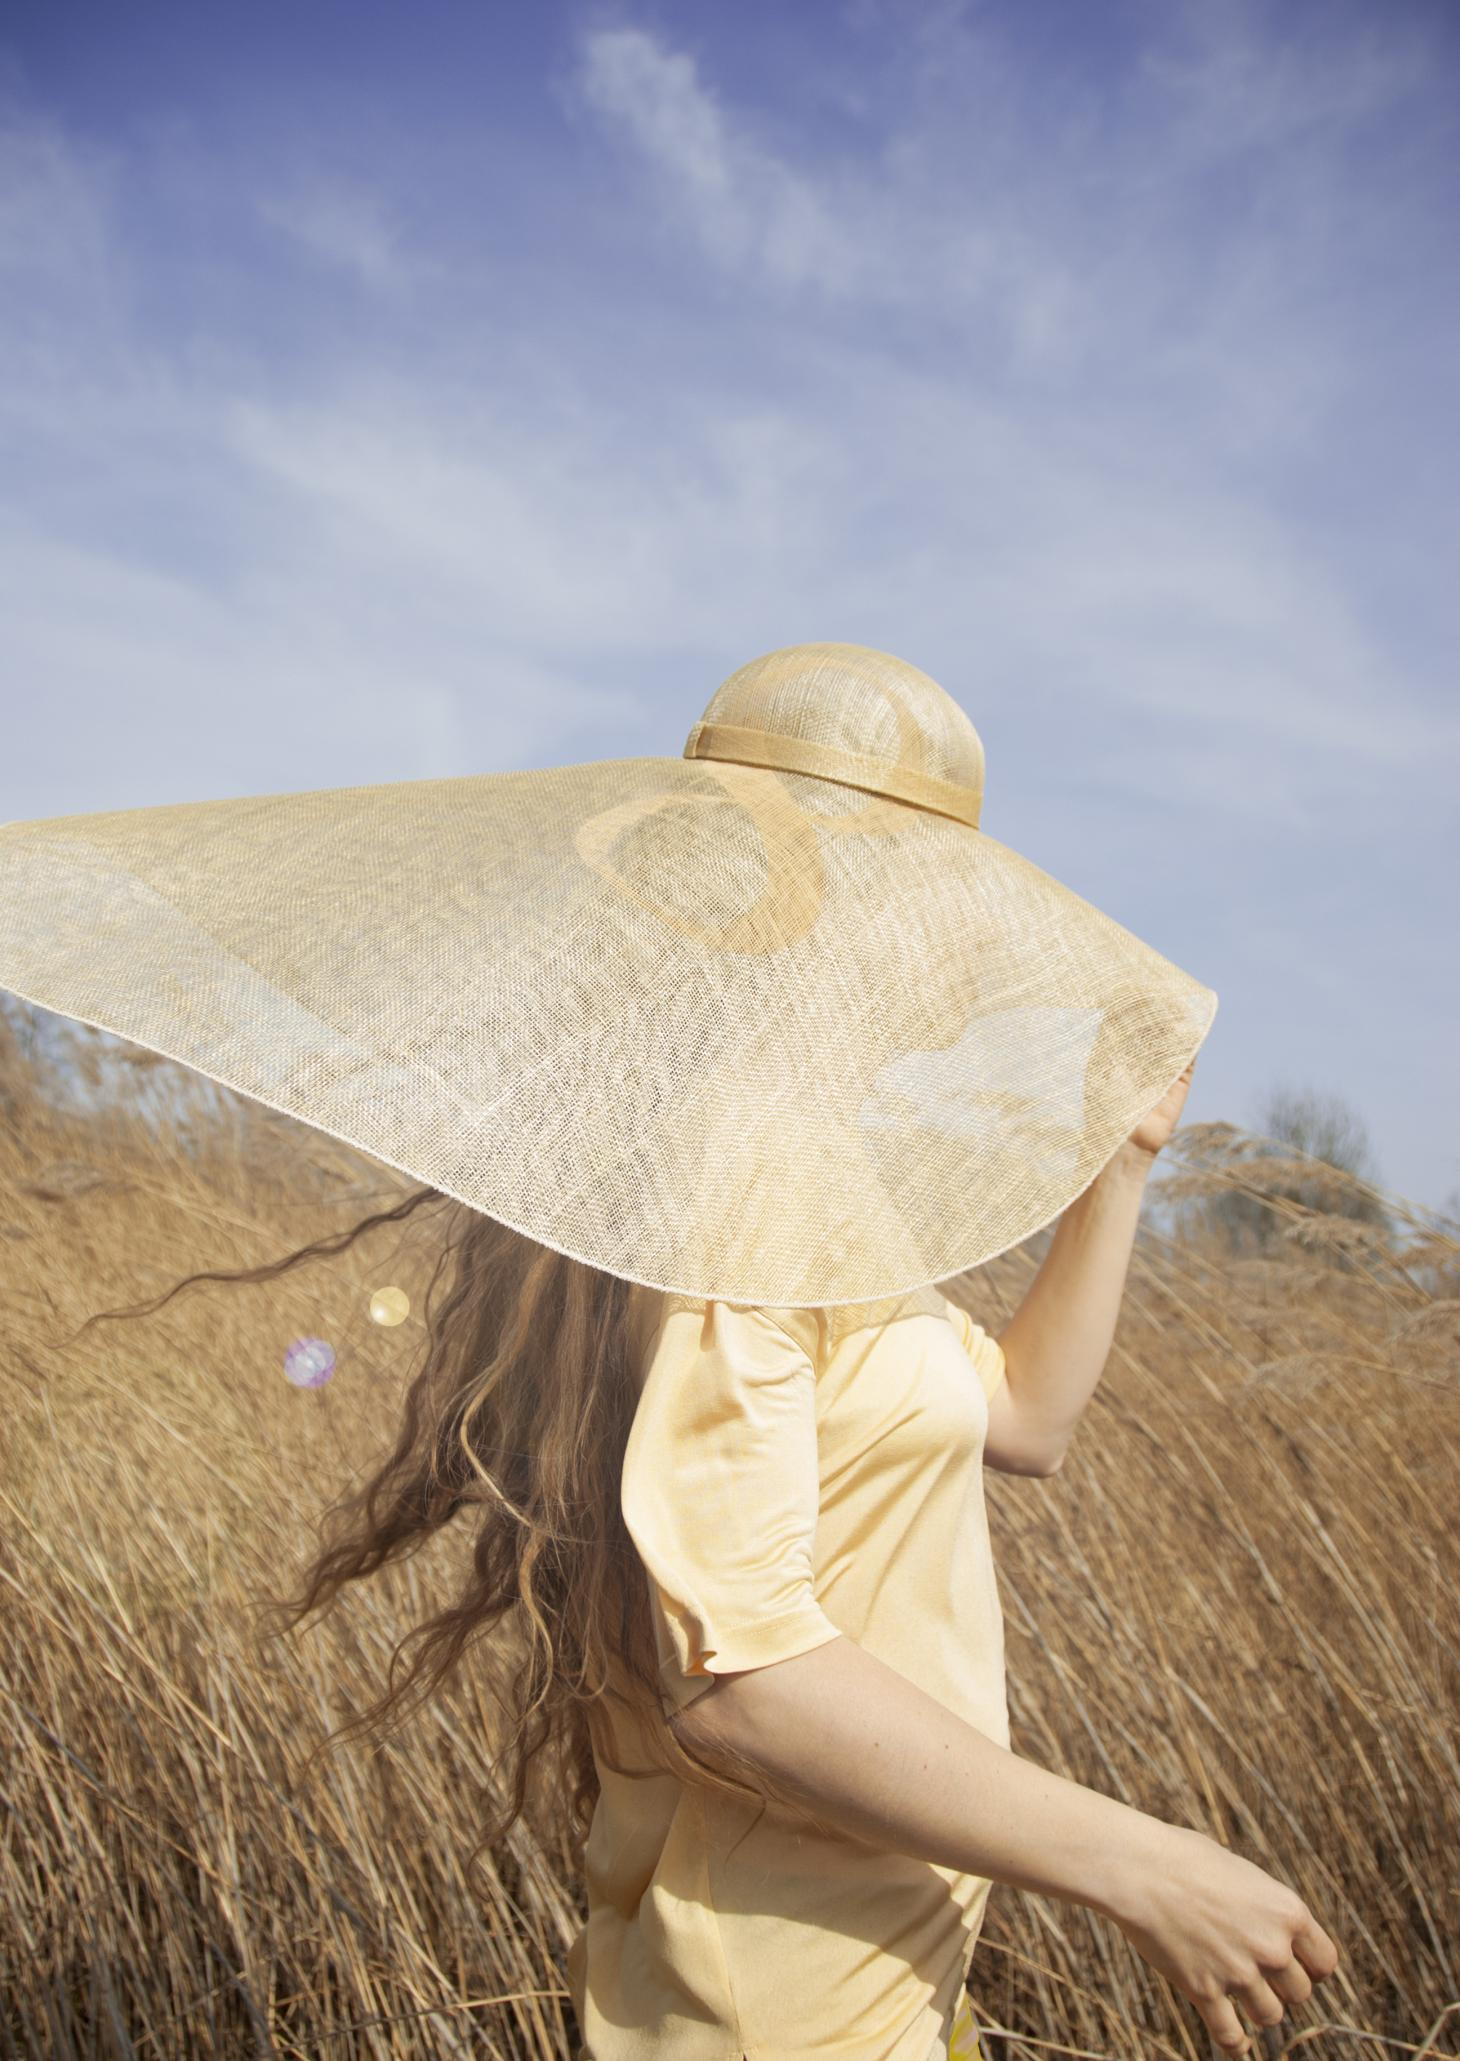 Hat by Buro Belen for the Sun+ project